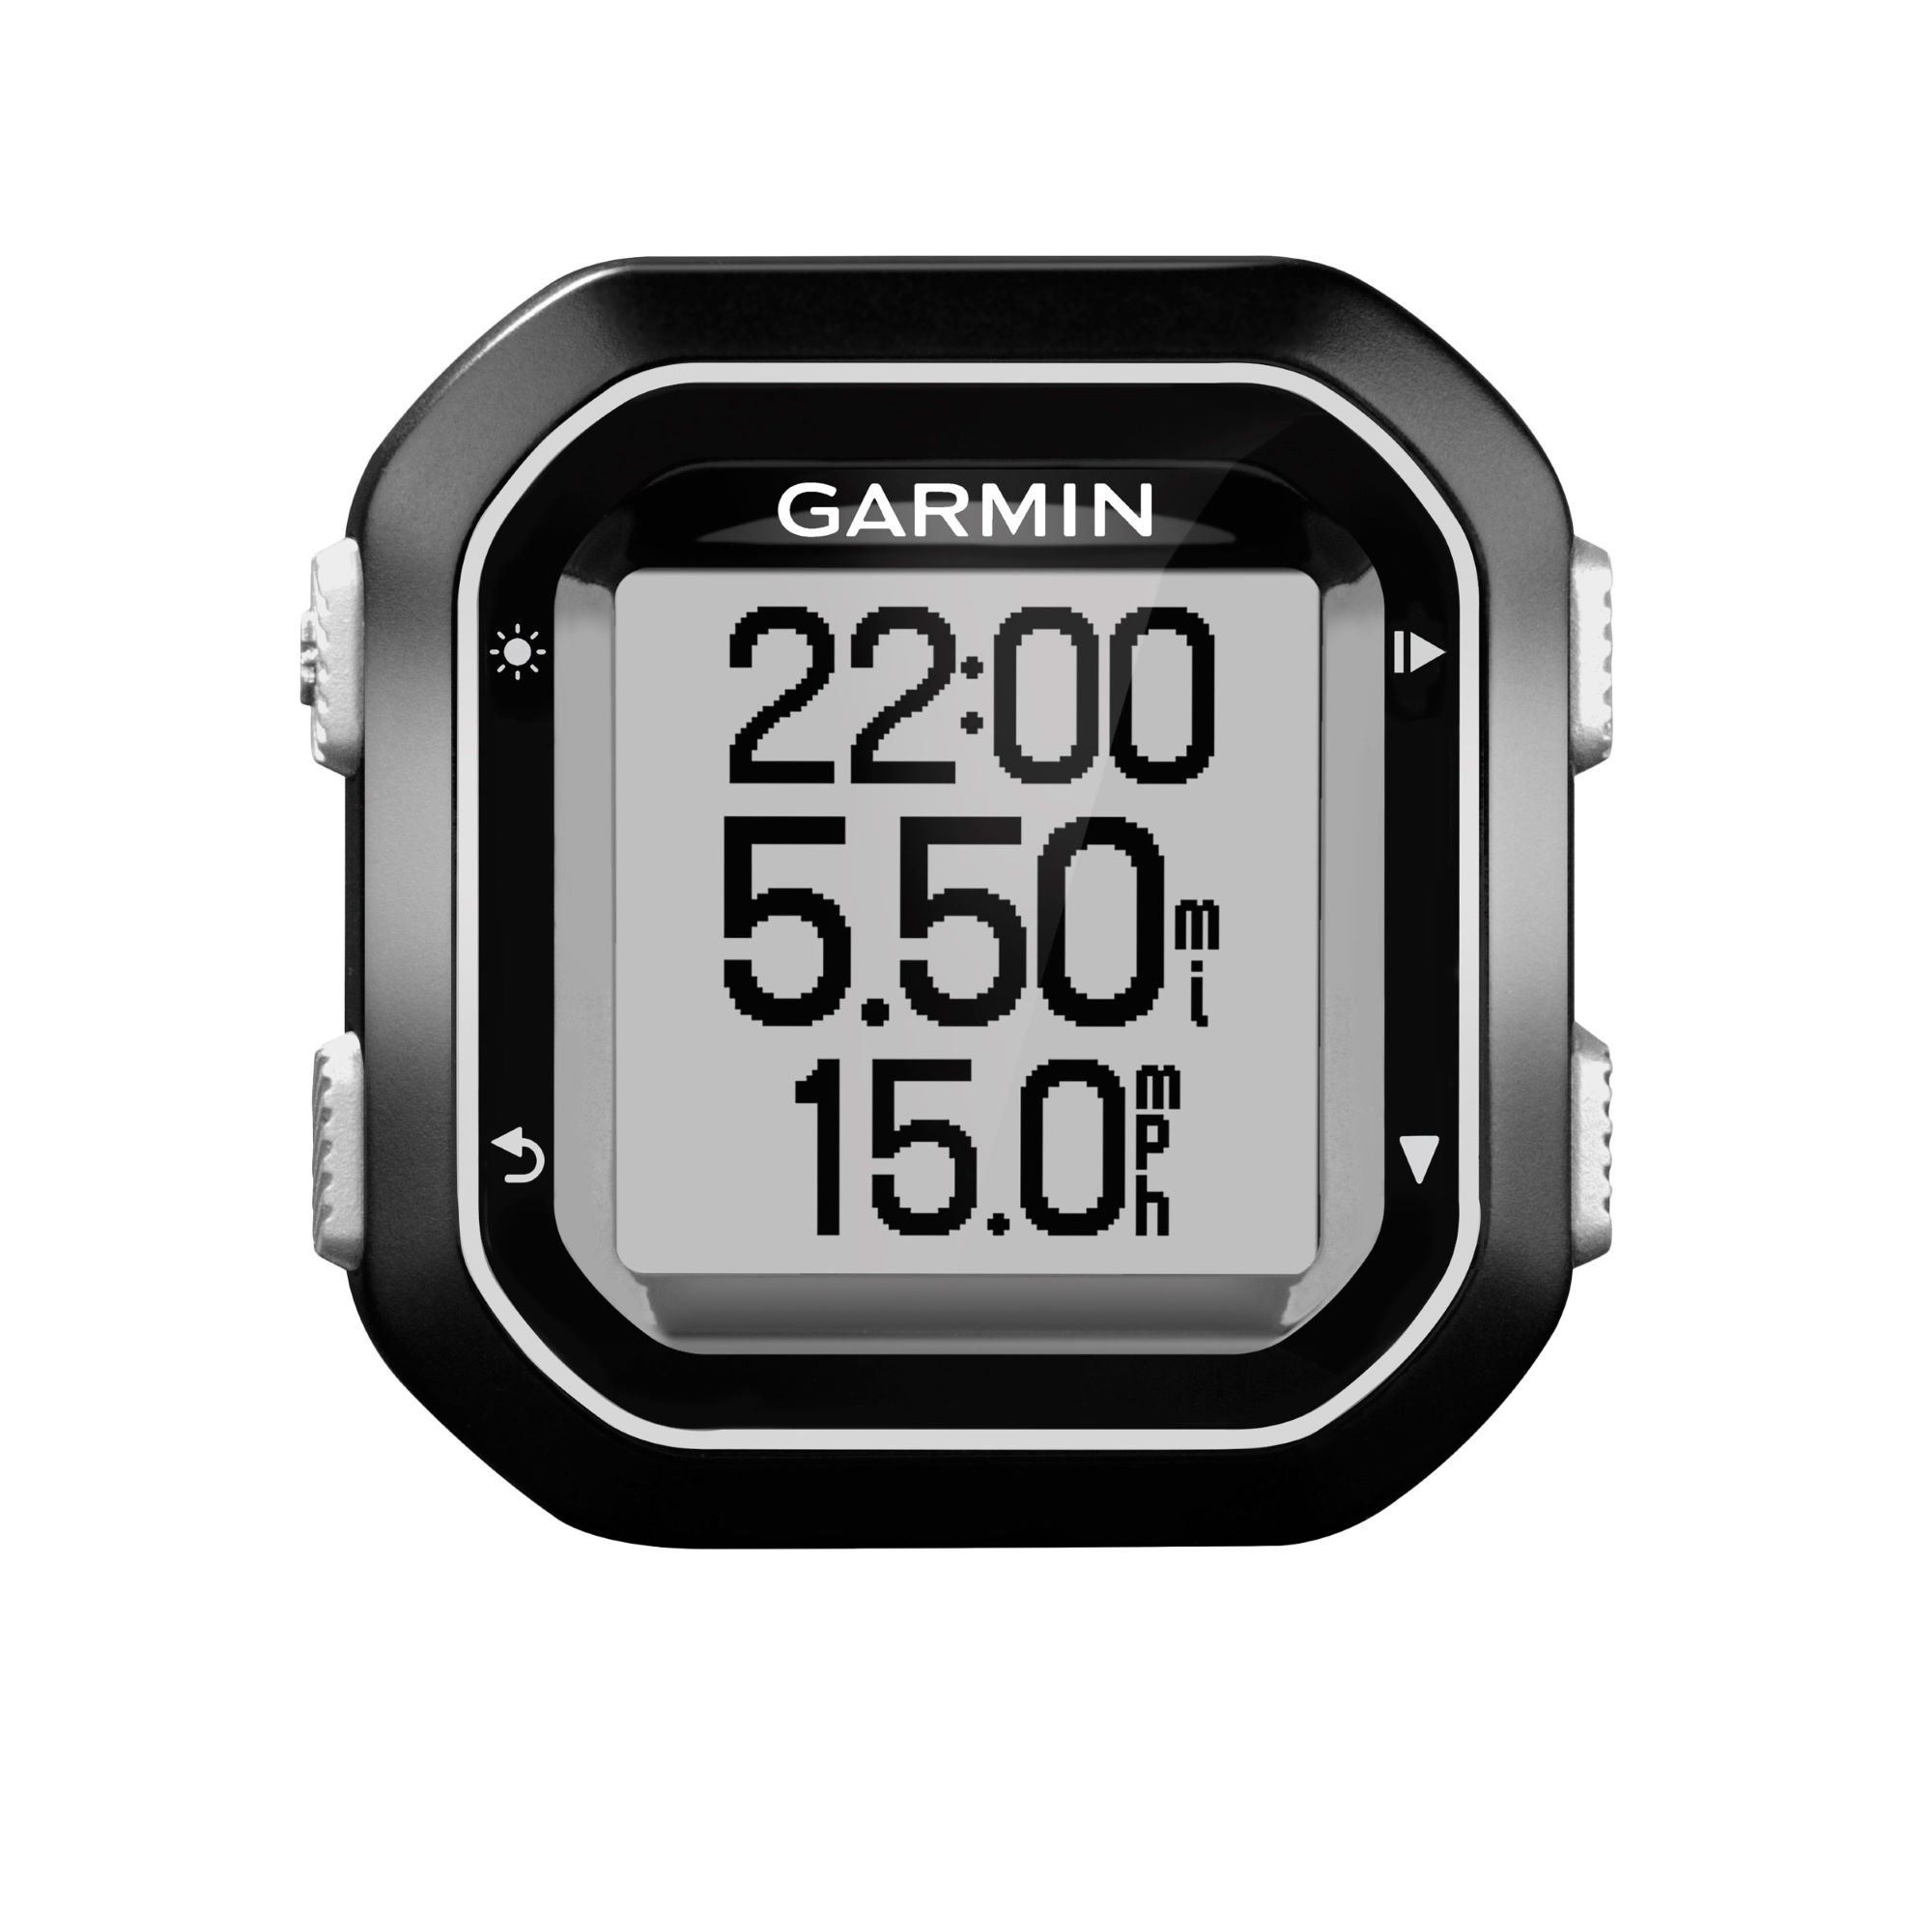 garmin edge 25 gps fahrradcomputer fahrradcomputer gps. Black Bedroom Furniture Sets. Home Design Ideas